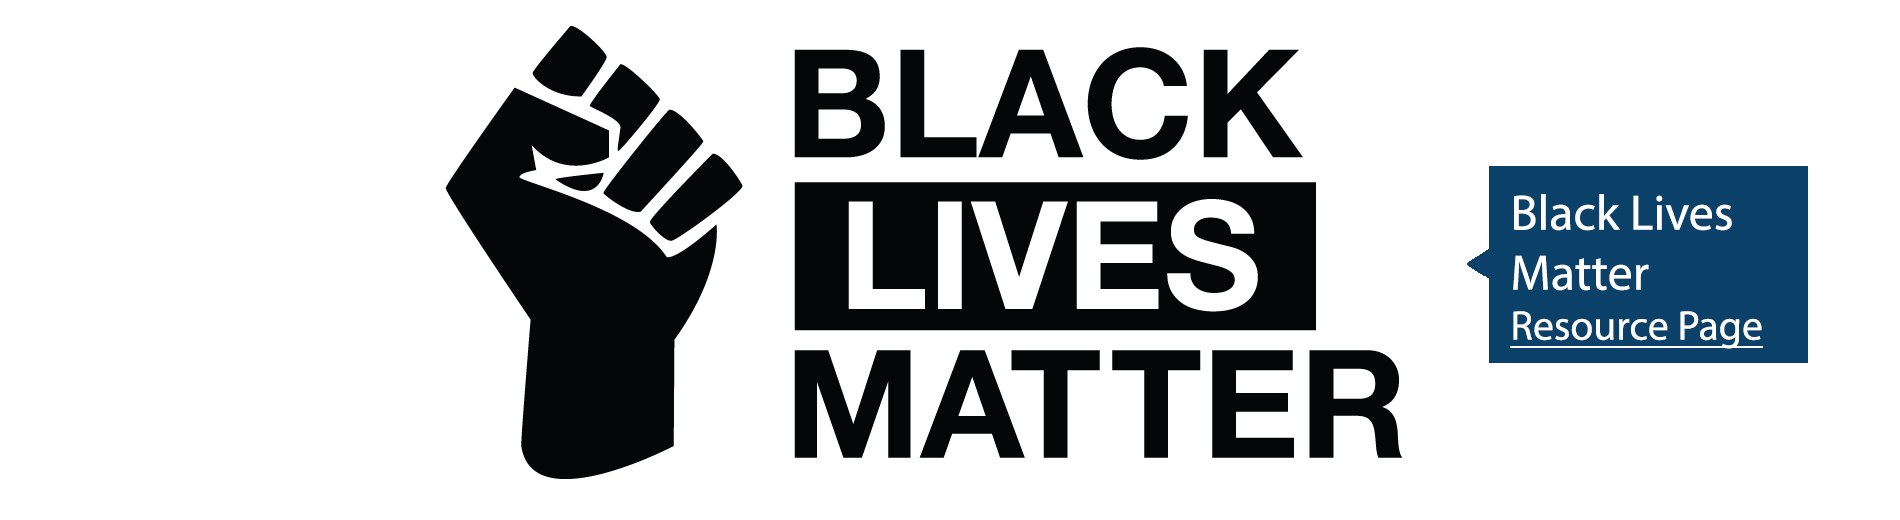 Black Lives Matter Resources